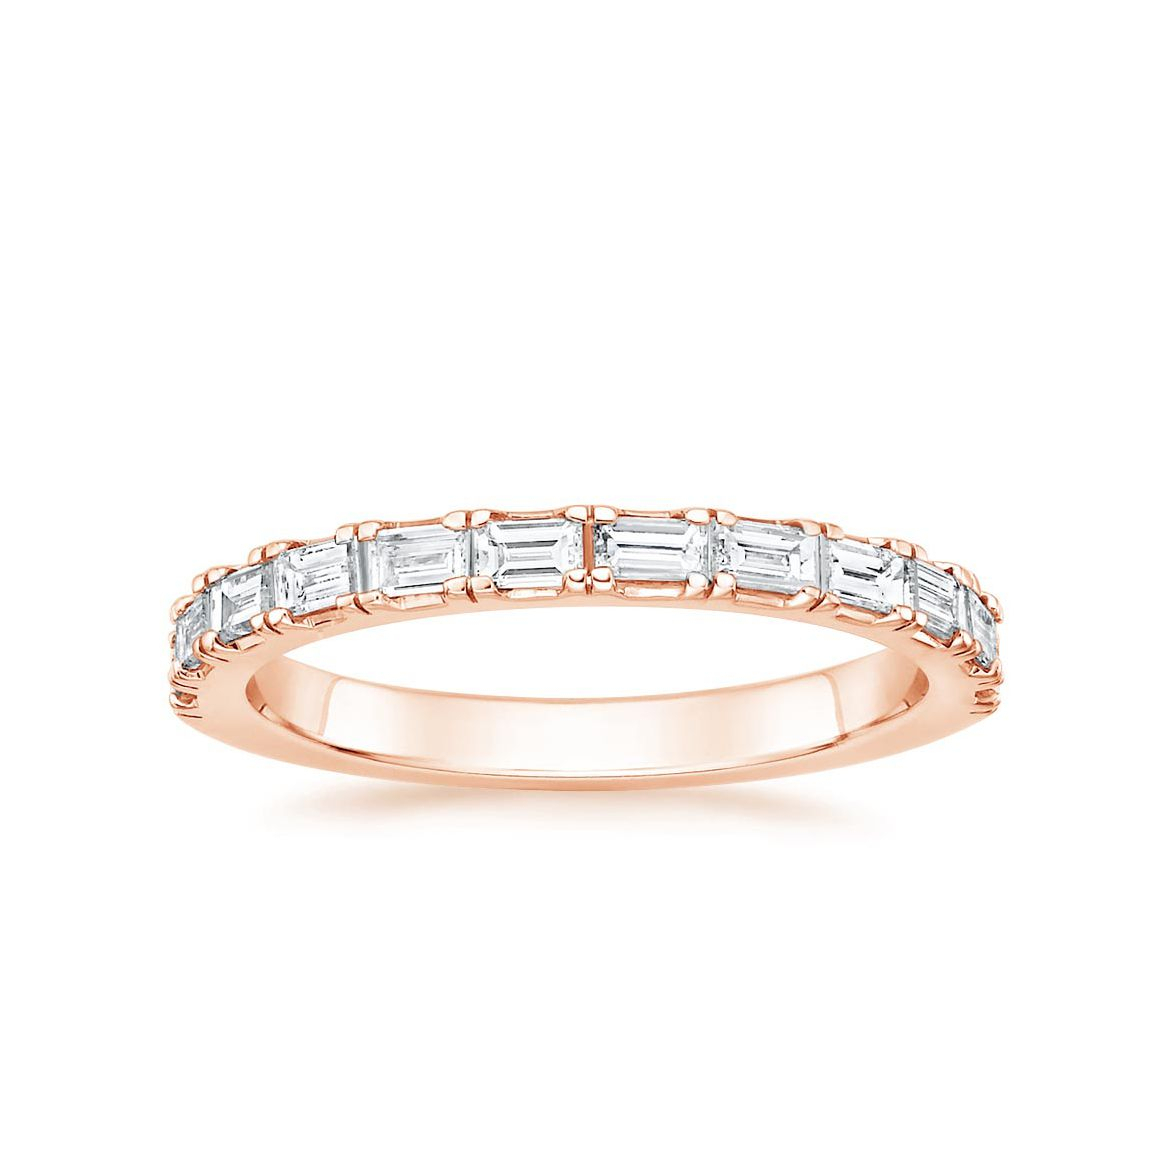 62 Extraordinary Baguette Wedding Bands For Every Style Inside Most Recently Released Diamond Slant Anniversary Bands In White Gold (View 15 of 25)